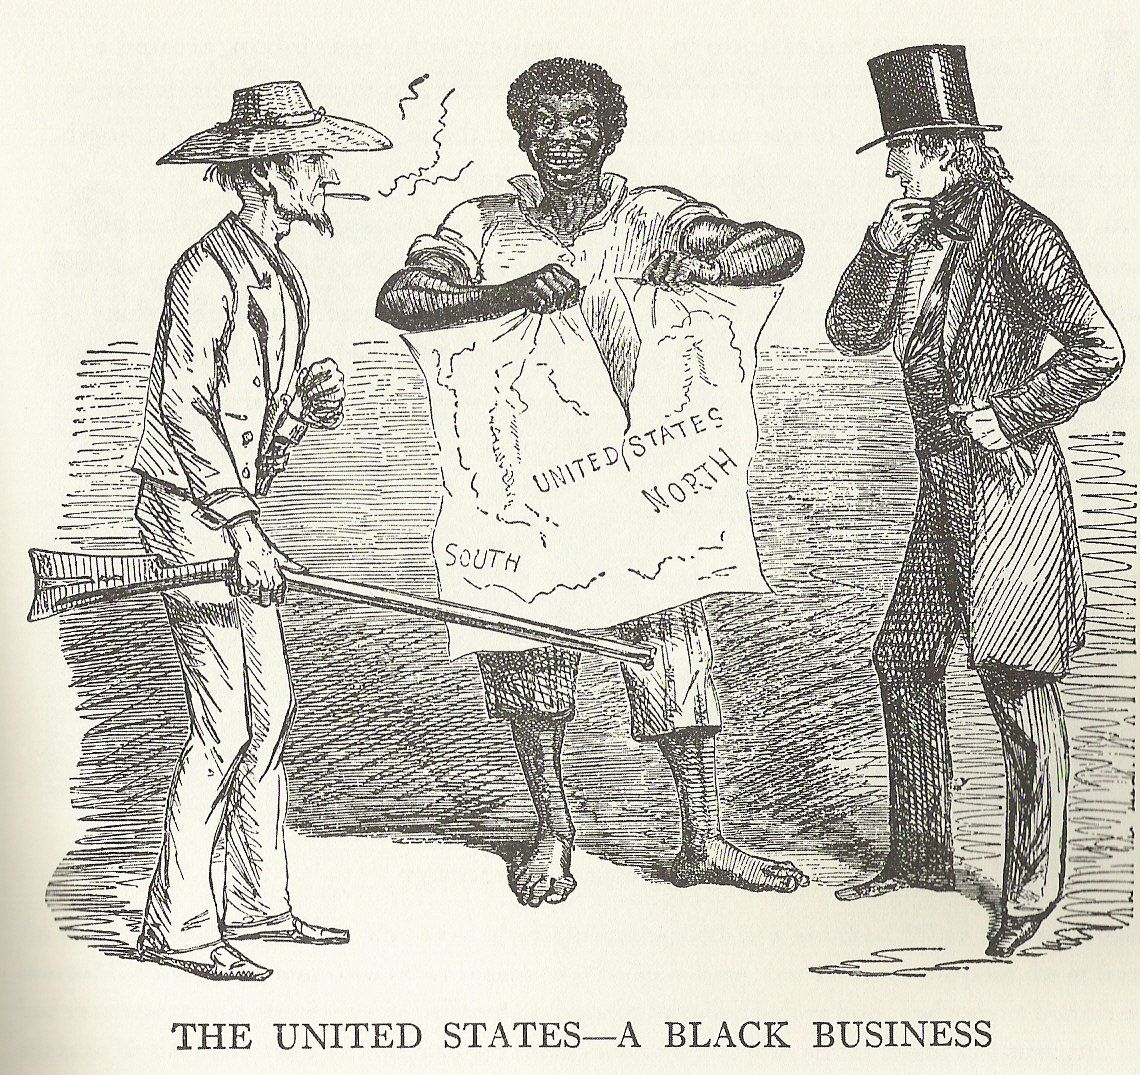 an analysis of the united states after the civil war and the history of freedmen And destiny of the colored people of the united states the united states in 1861, six weeks after the civil war in the freedmen's.